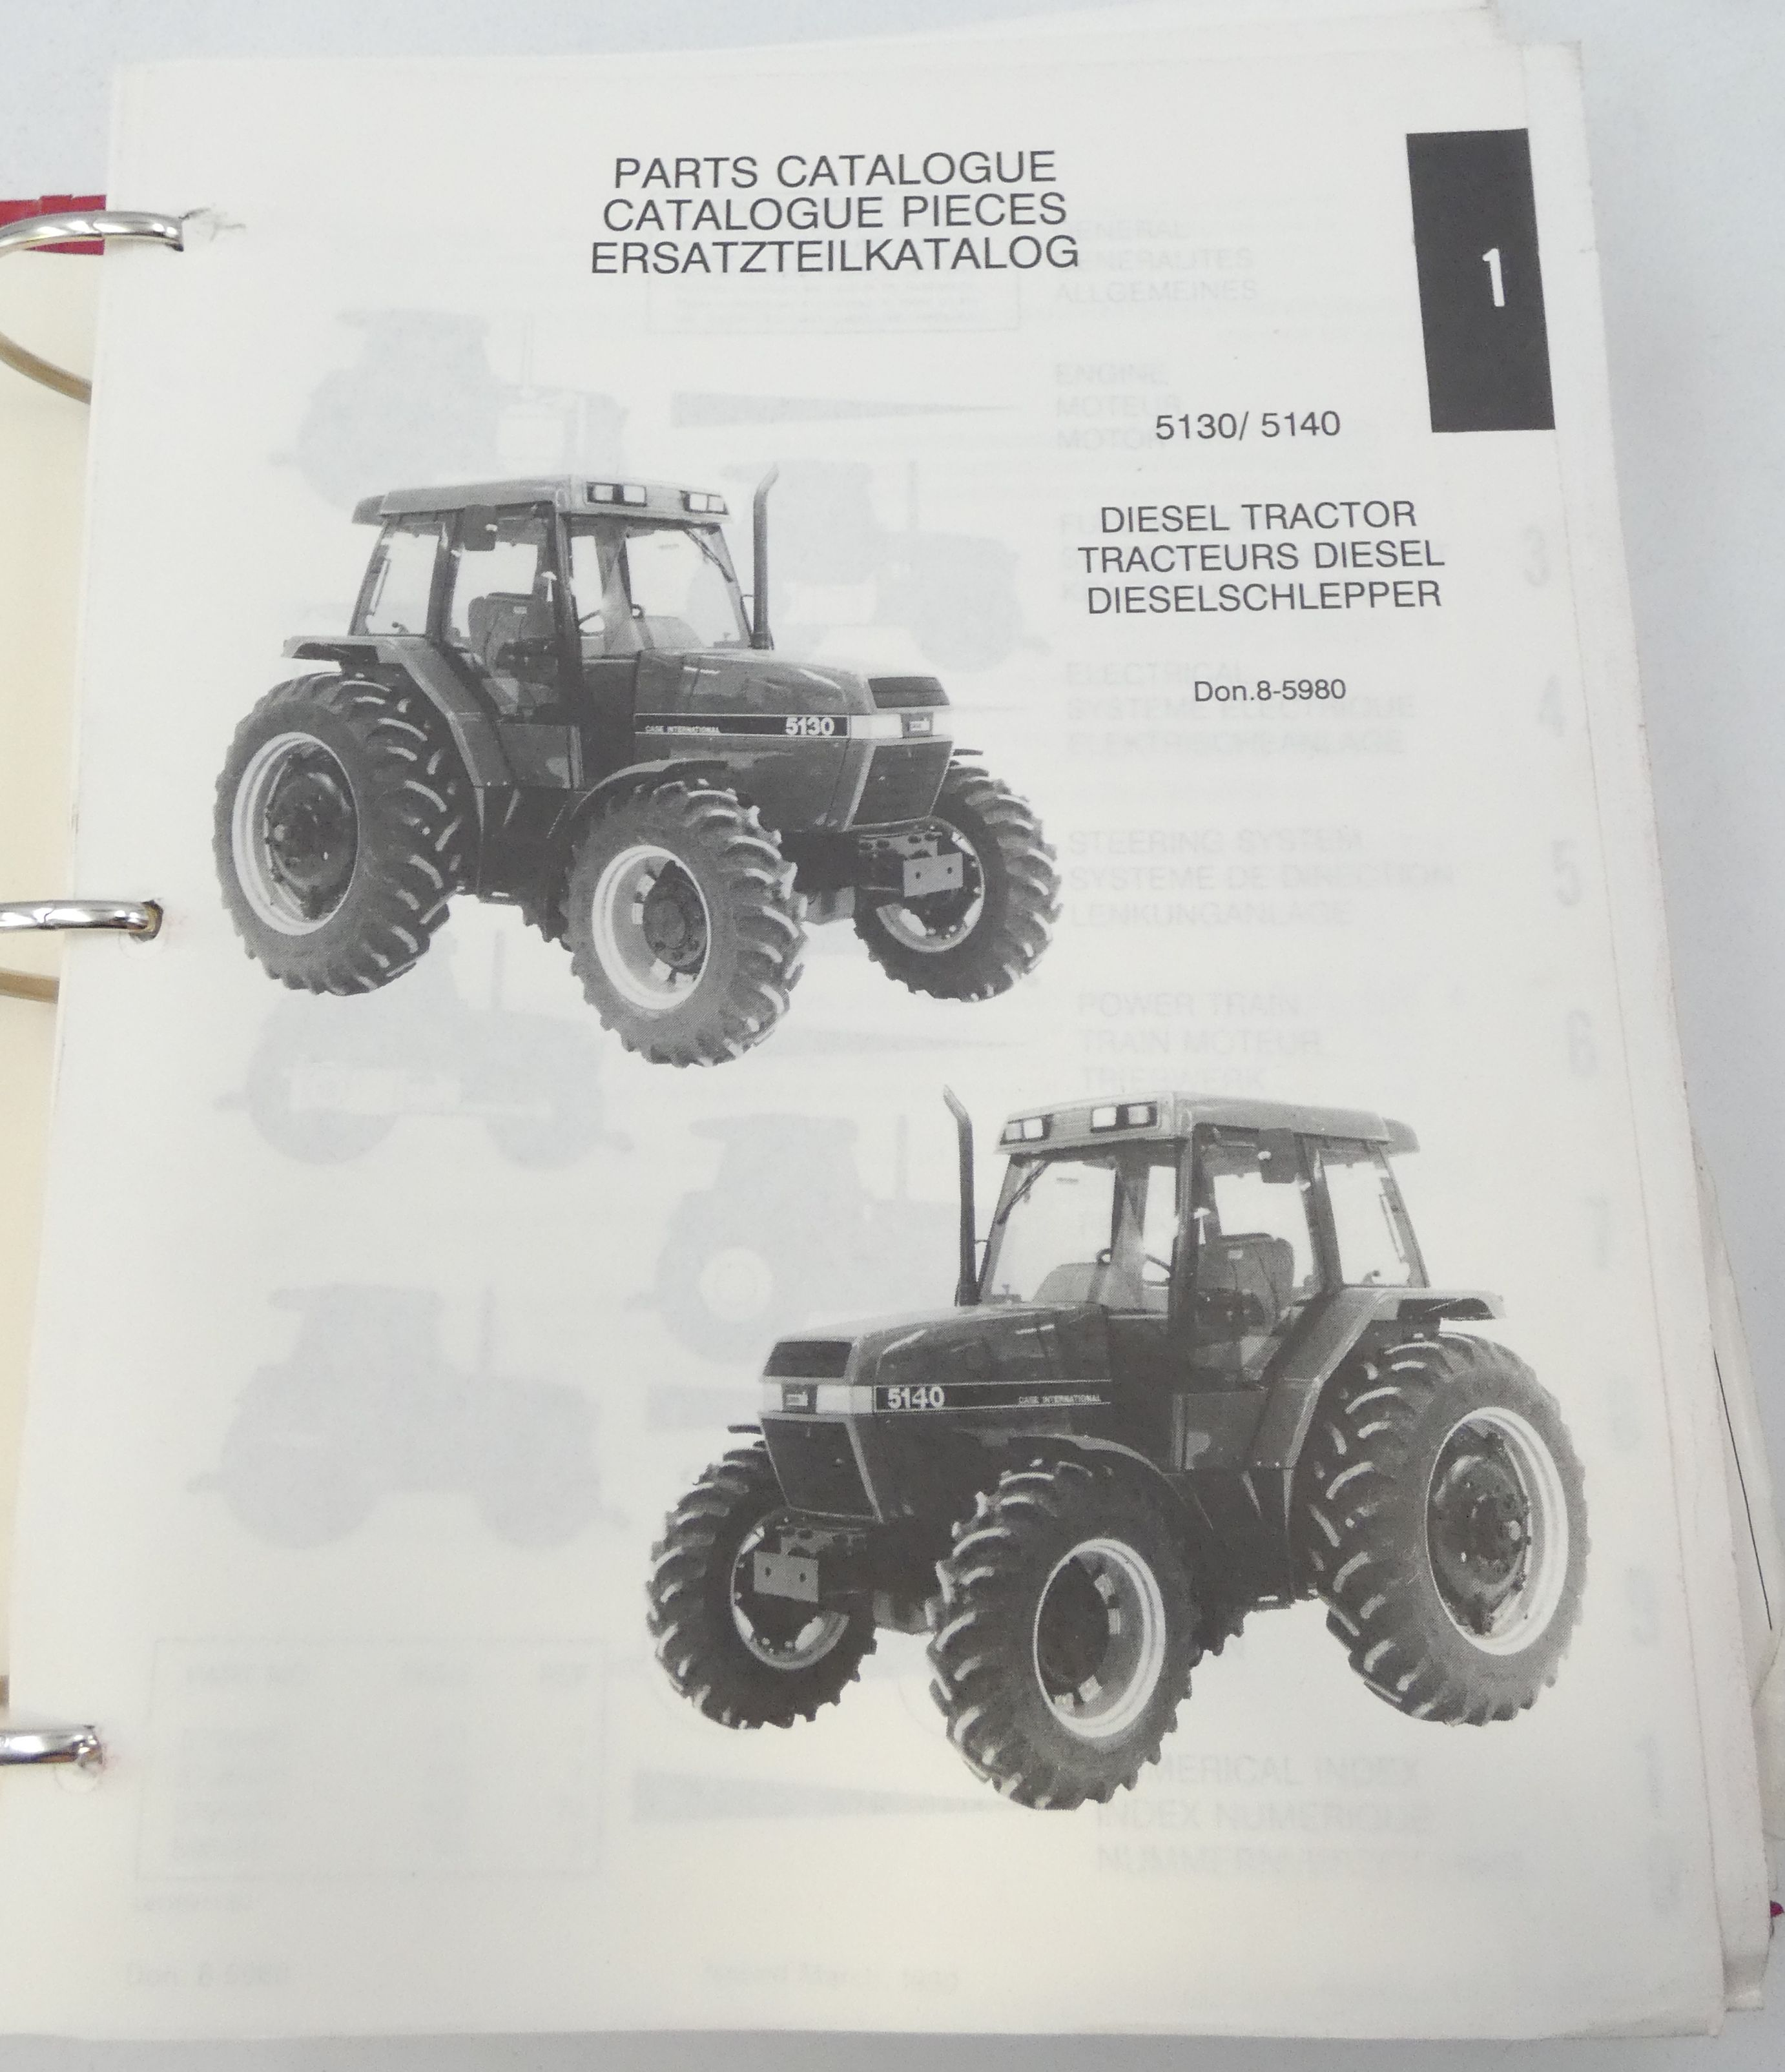 Case International 5130, 5140 diesel tractor parts catalogue